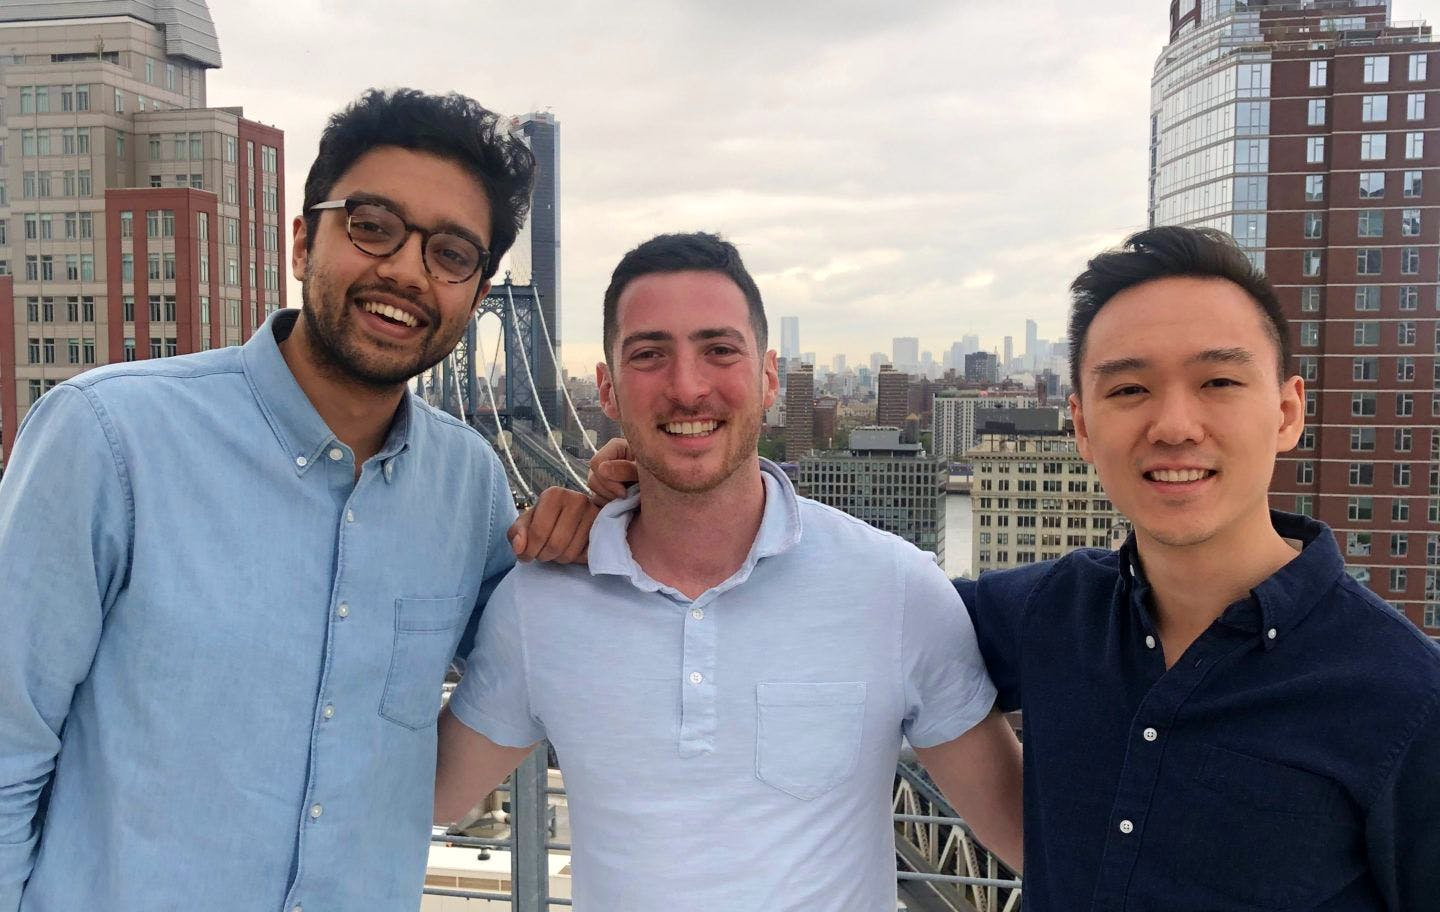 The Cofounders of Bowtie.ai on What it Takes to be Acquired and What They Did Right During the Process